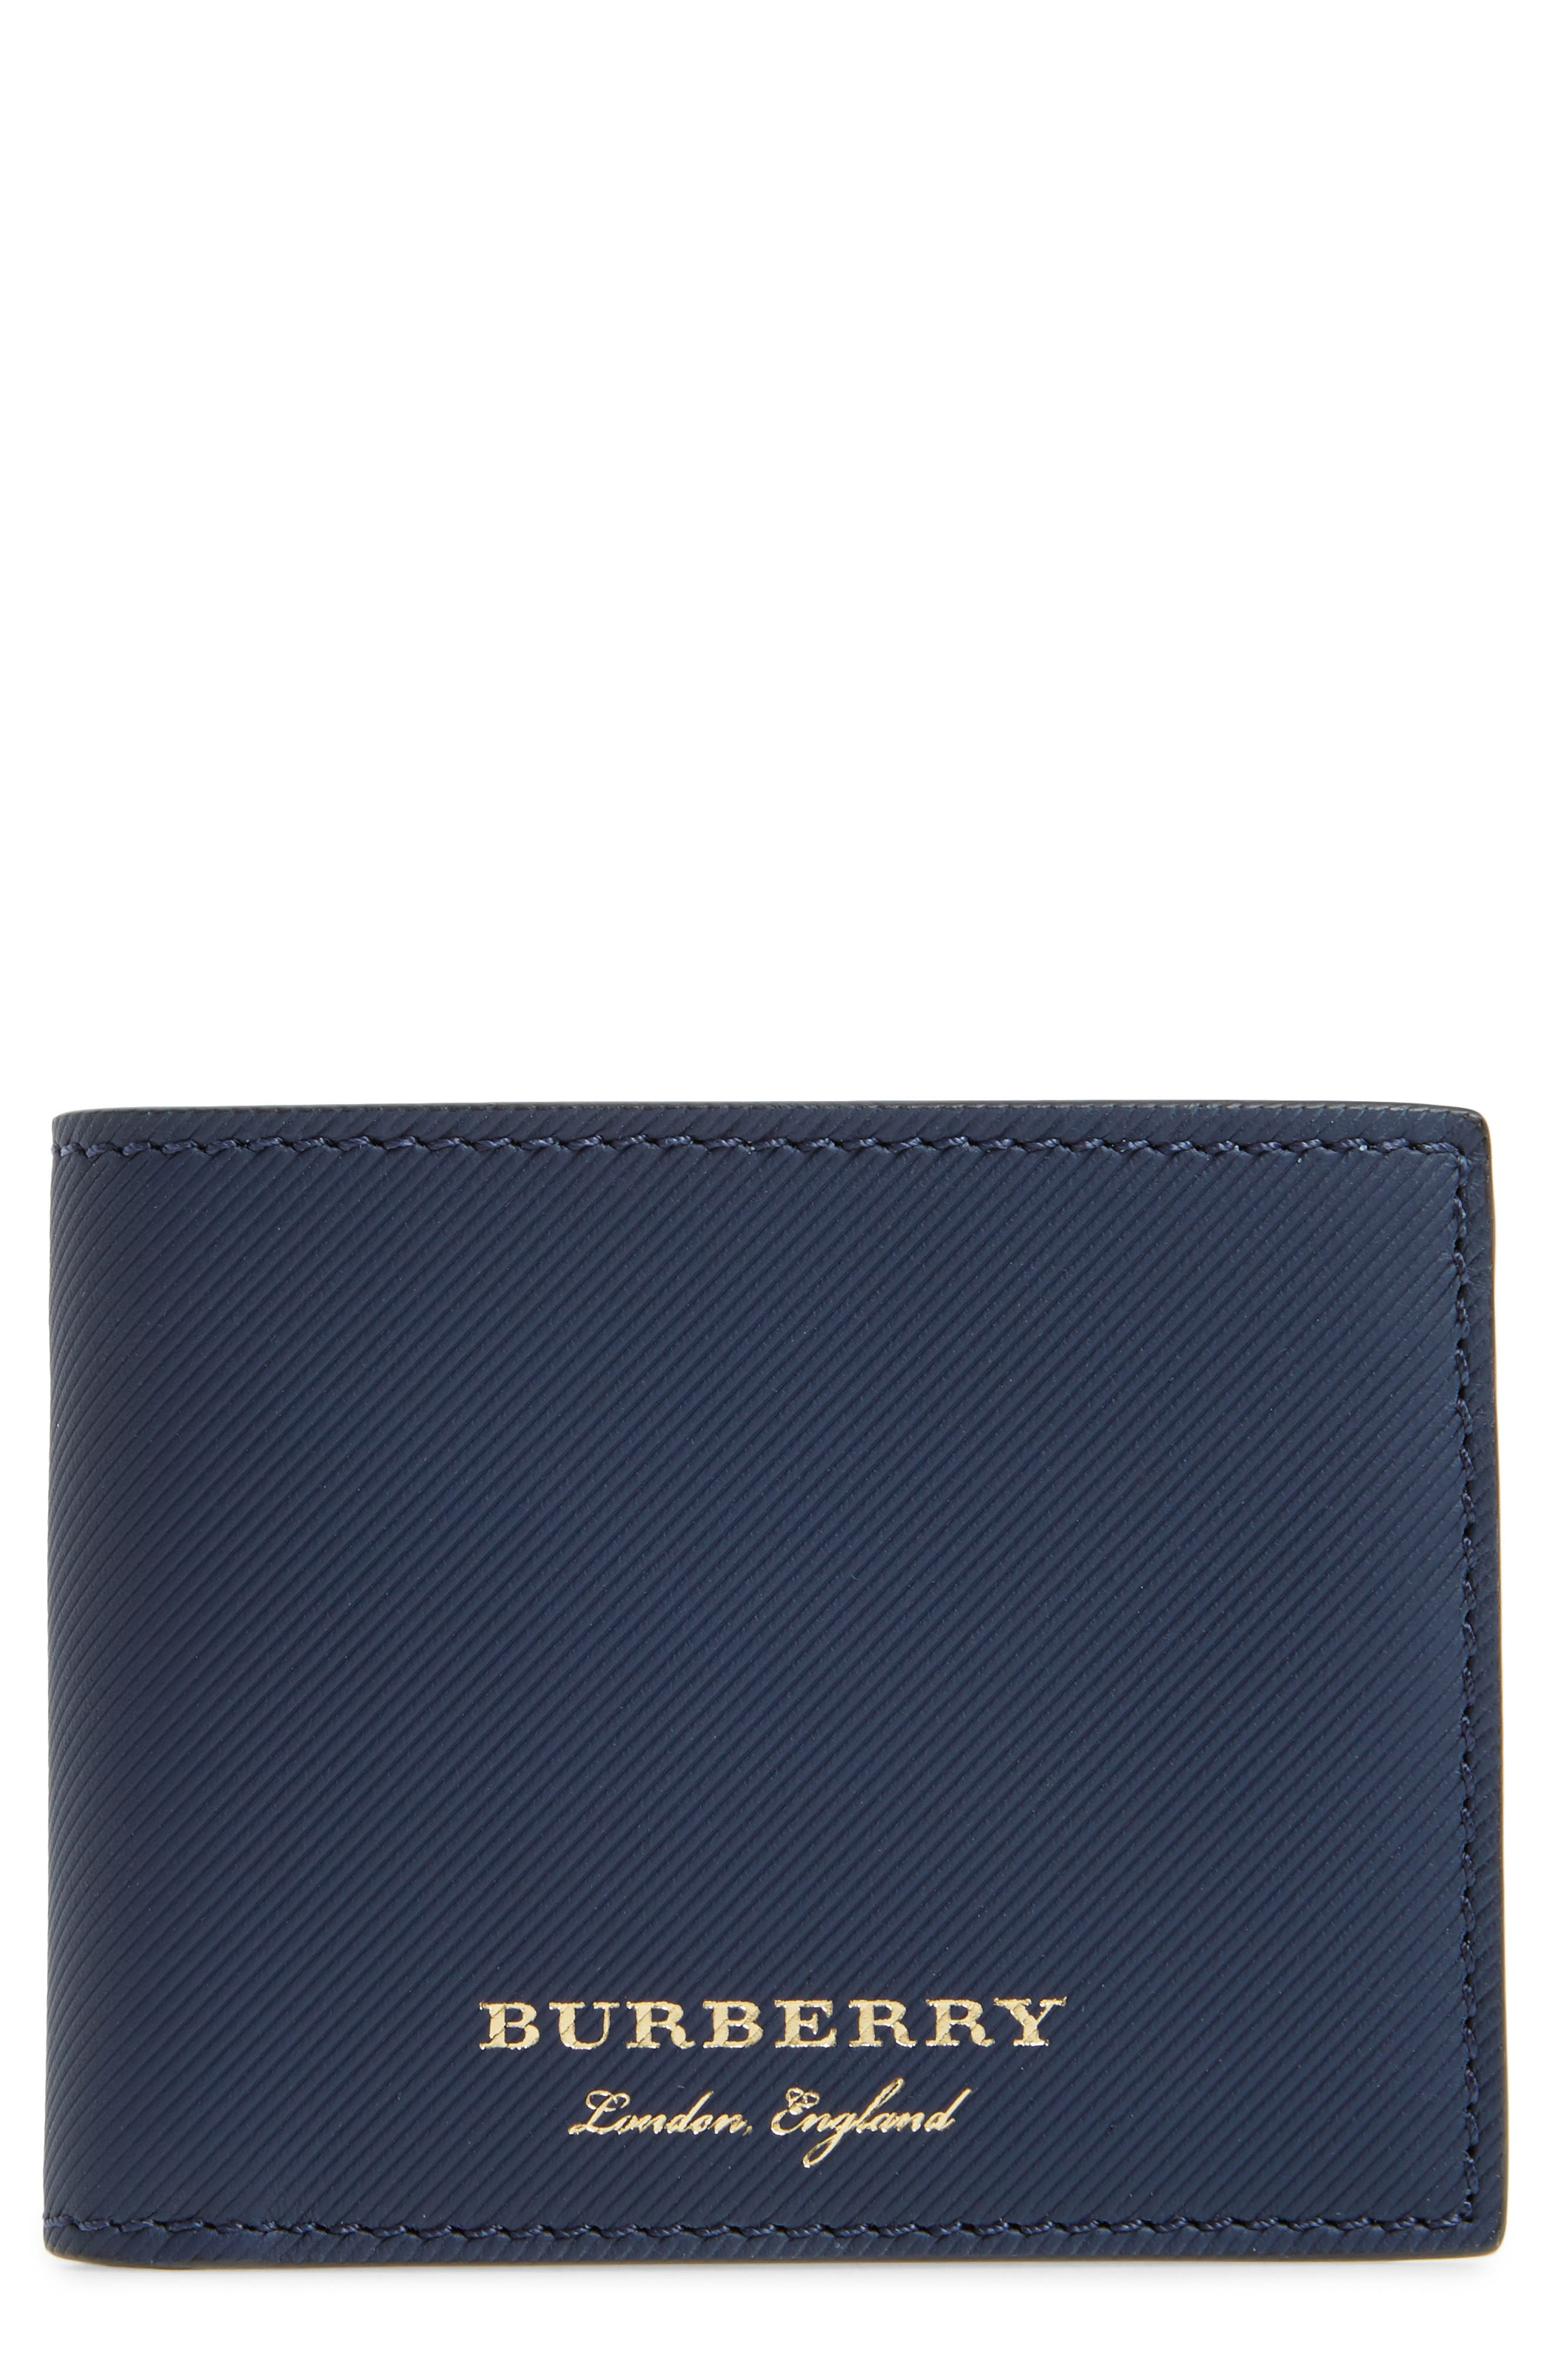 Trench Leather Wallet,                         Main,                         color,